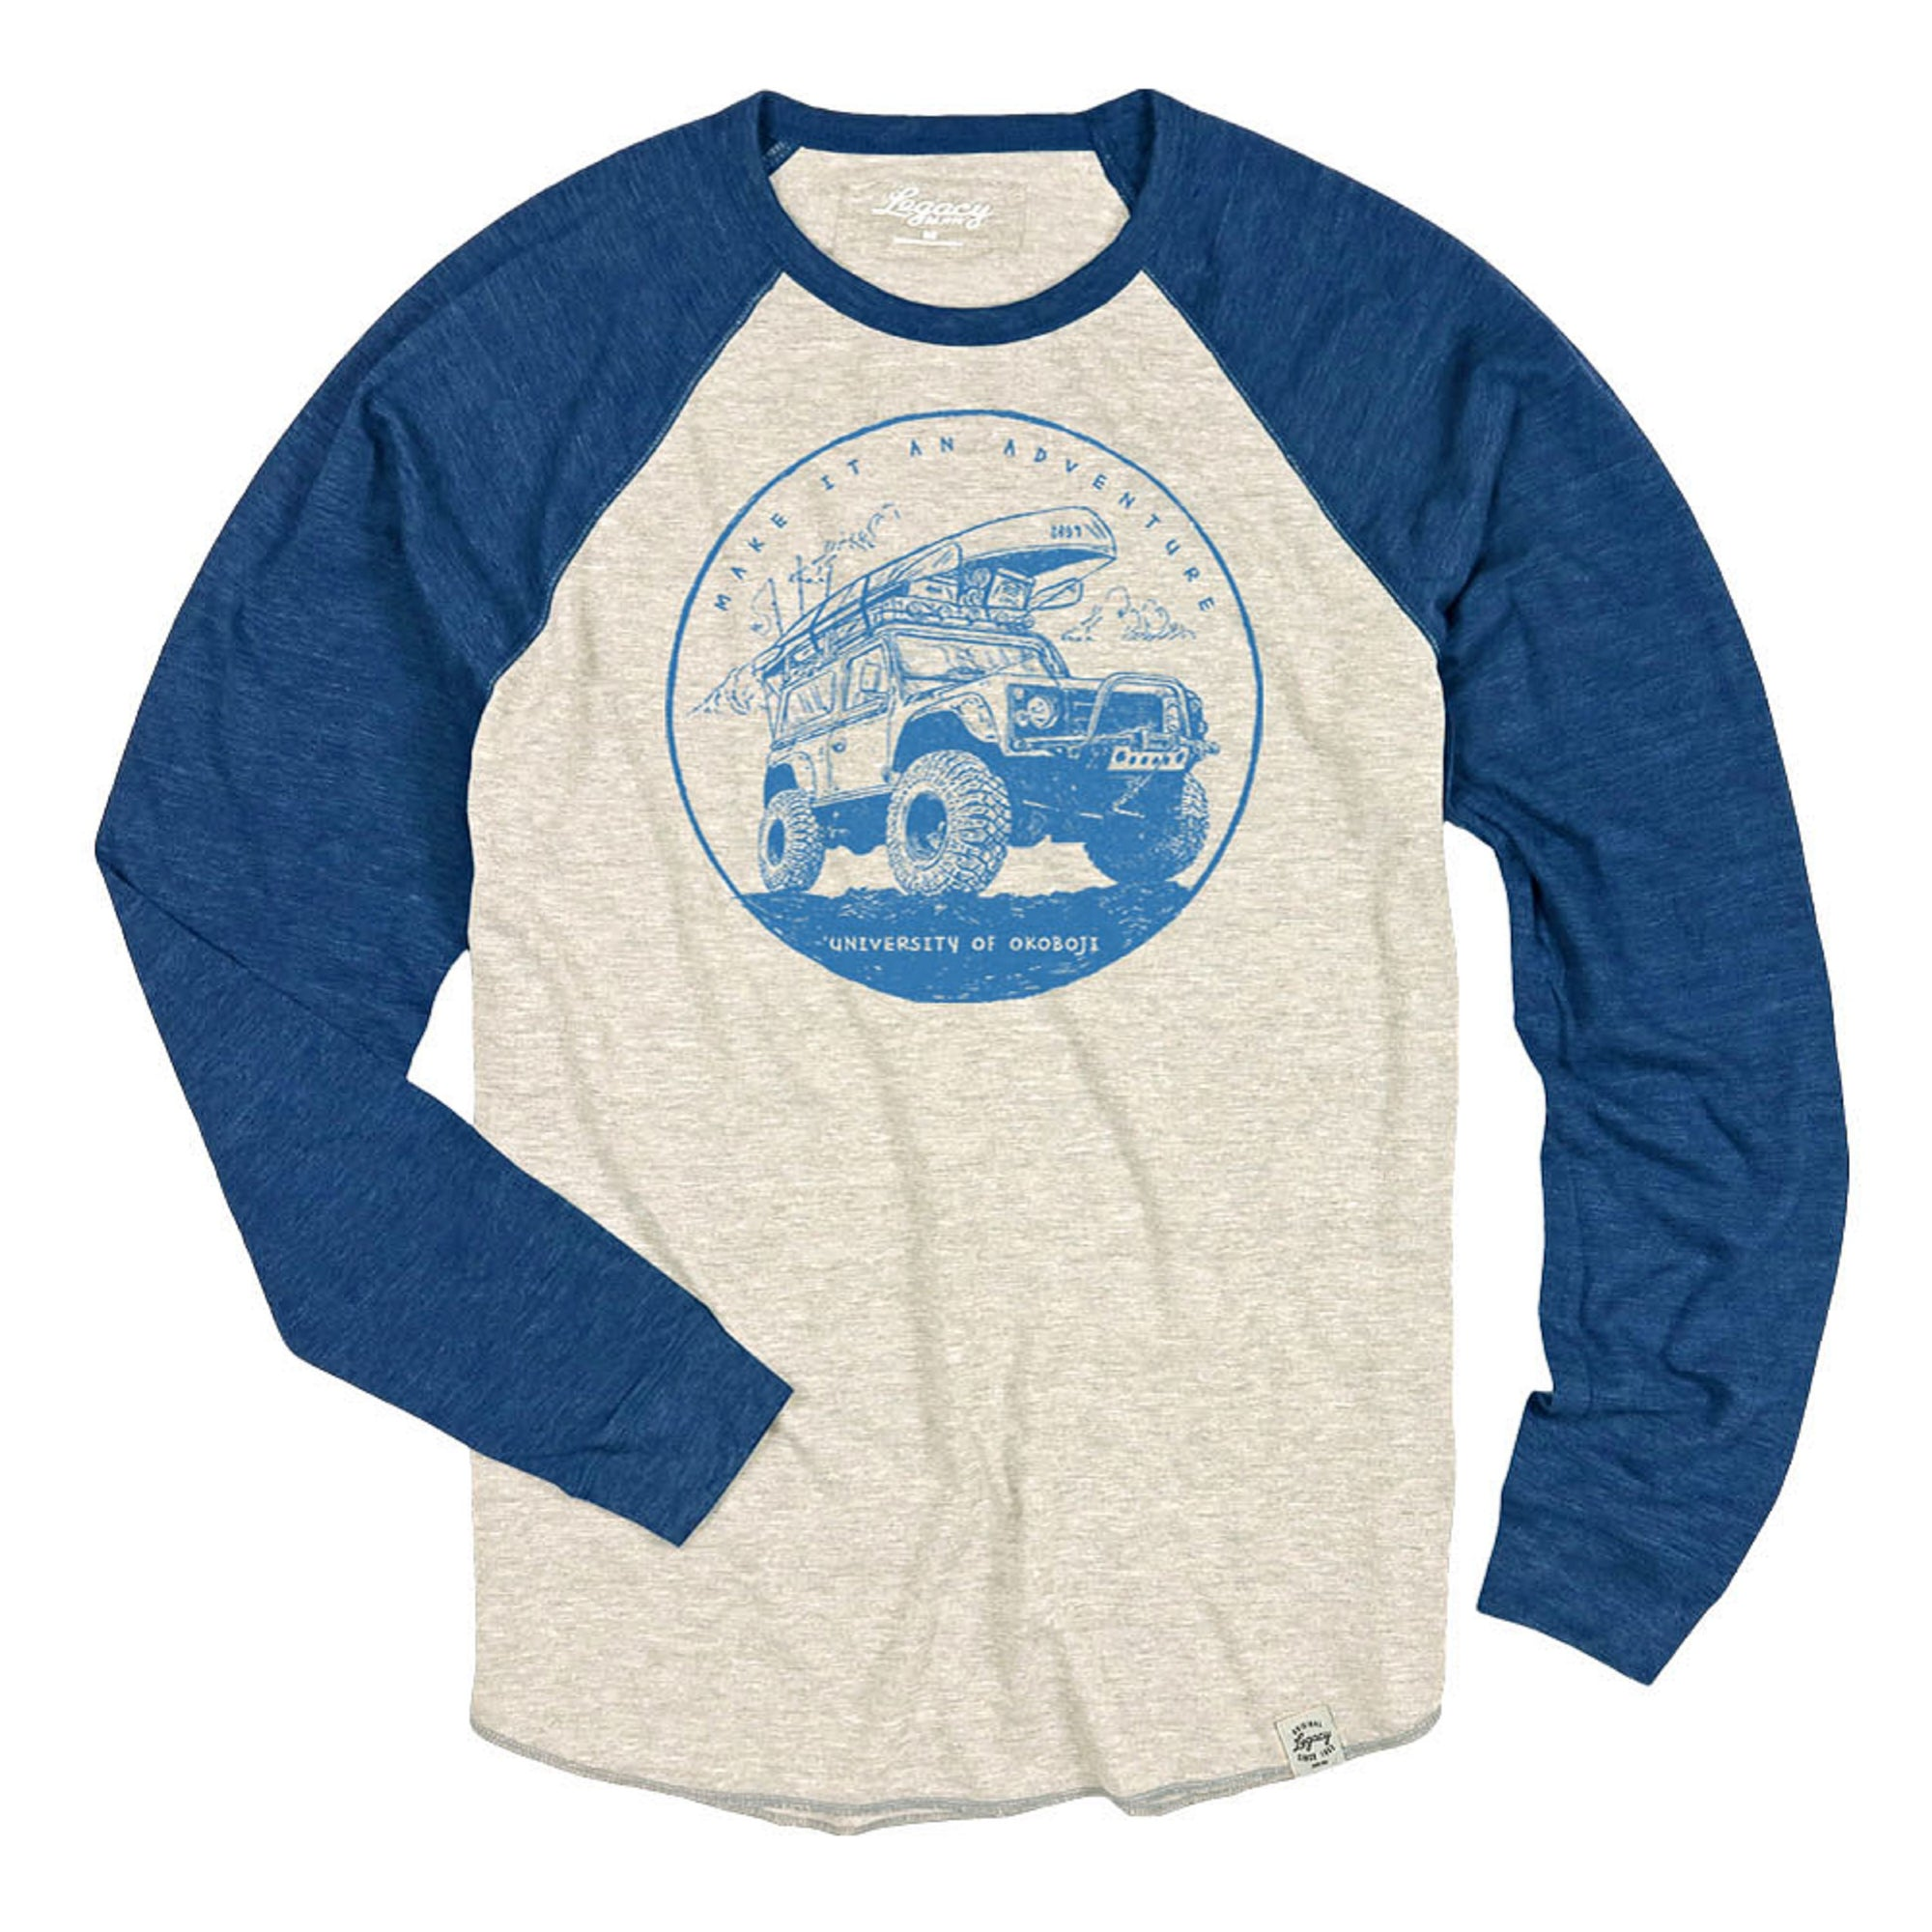 Okoboji Adventure Tri-Blend Long Sleeve Raglan - Oatmeal / Royal